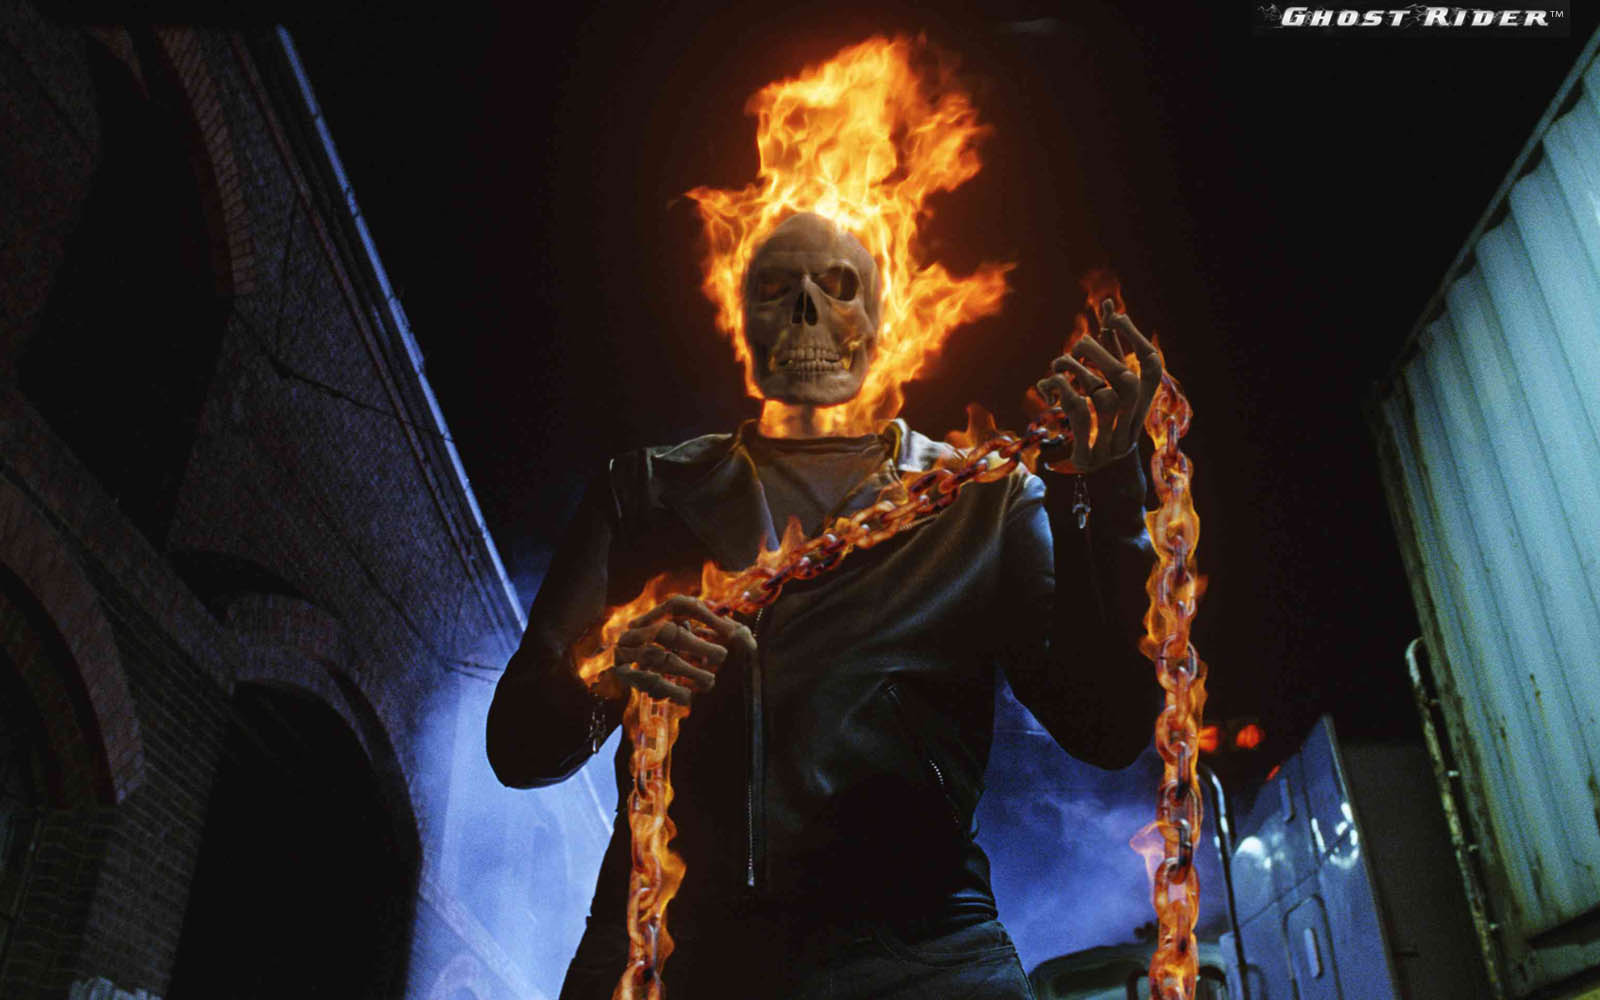 Tag Ghost Rider Wallpapers Images Paos Pictures And Backgrounds For Free